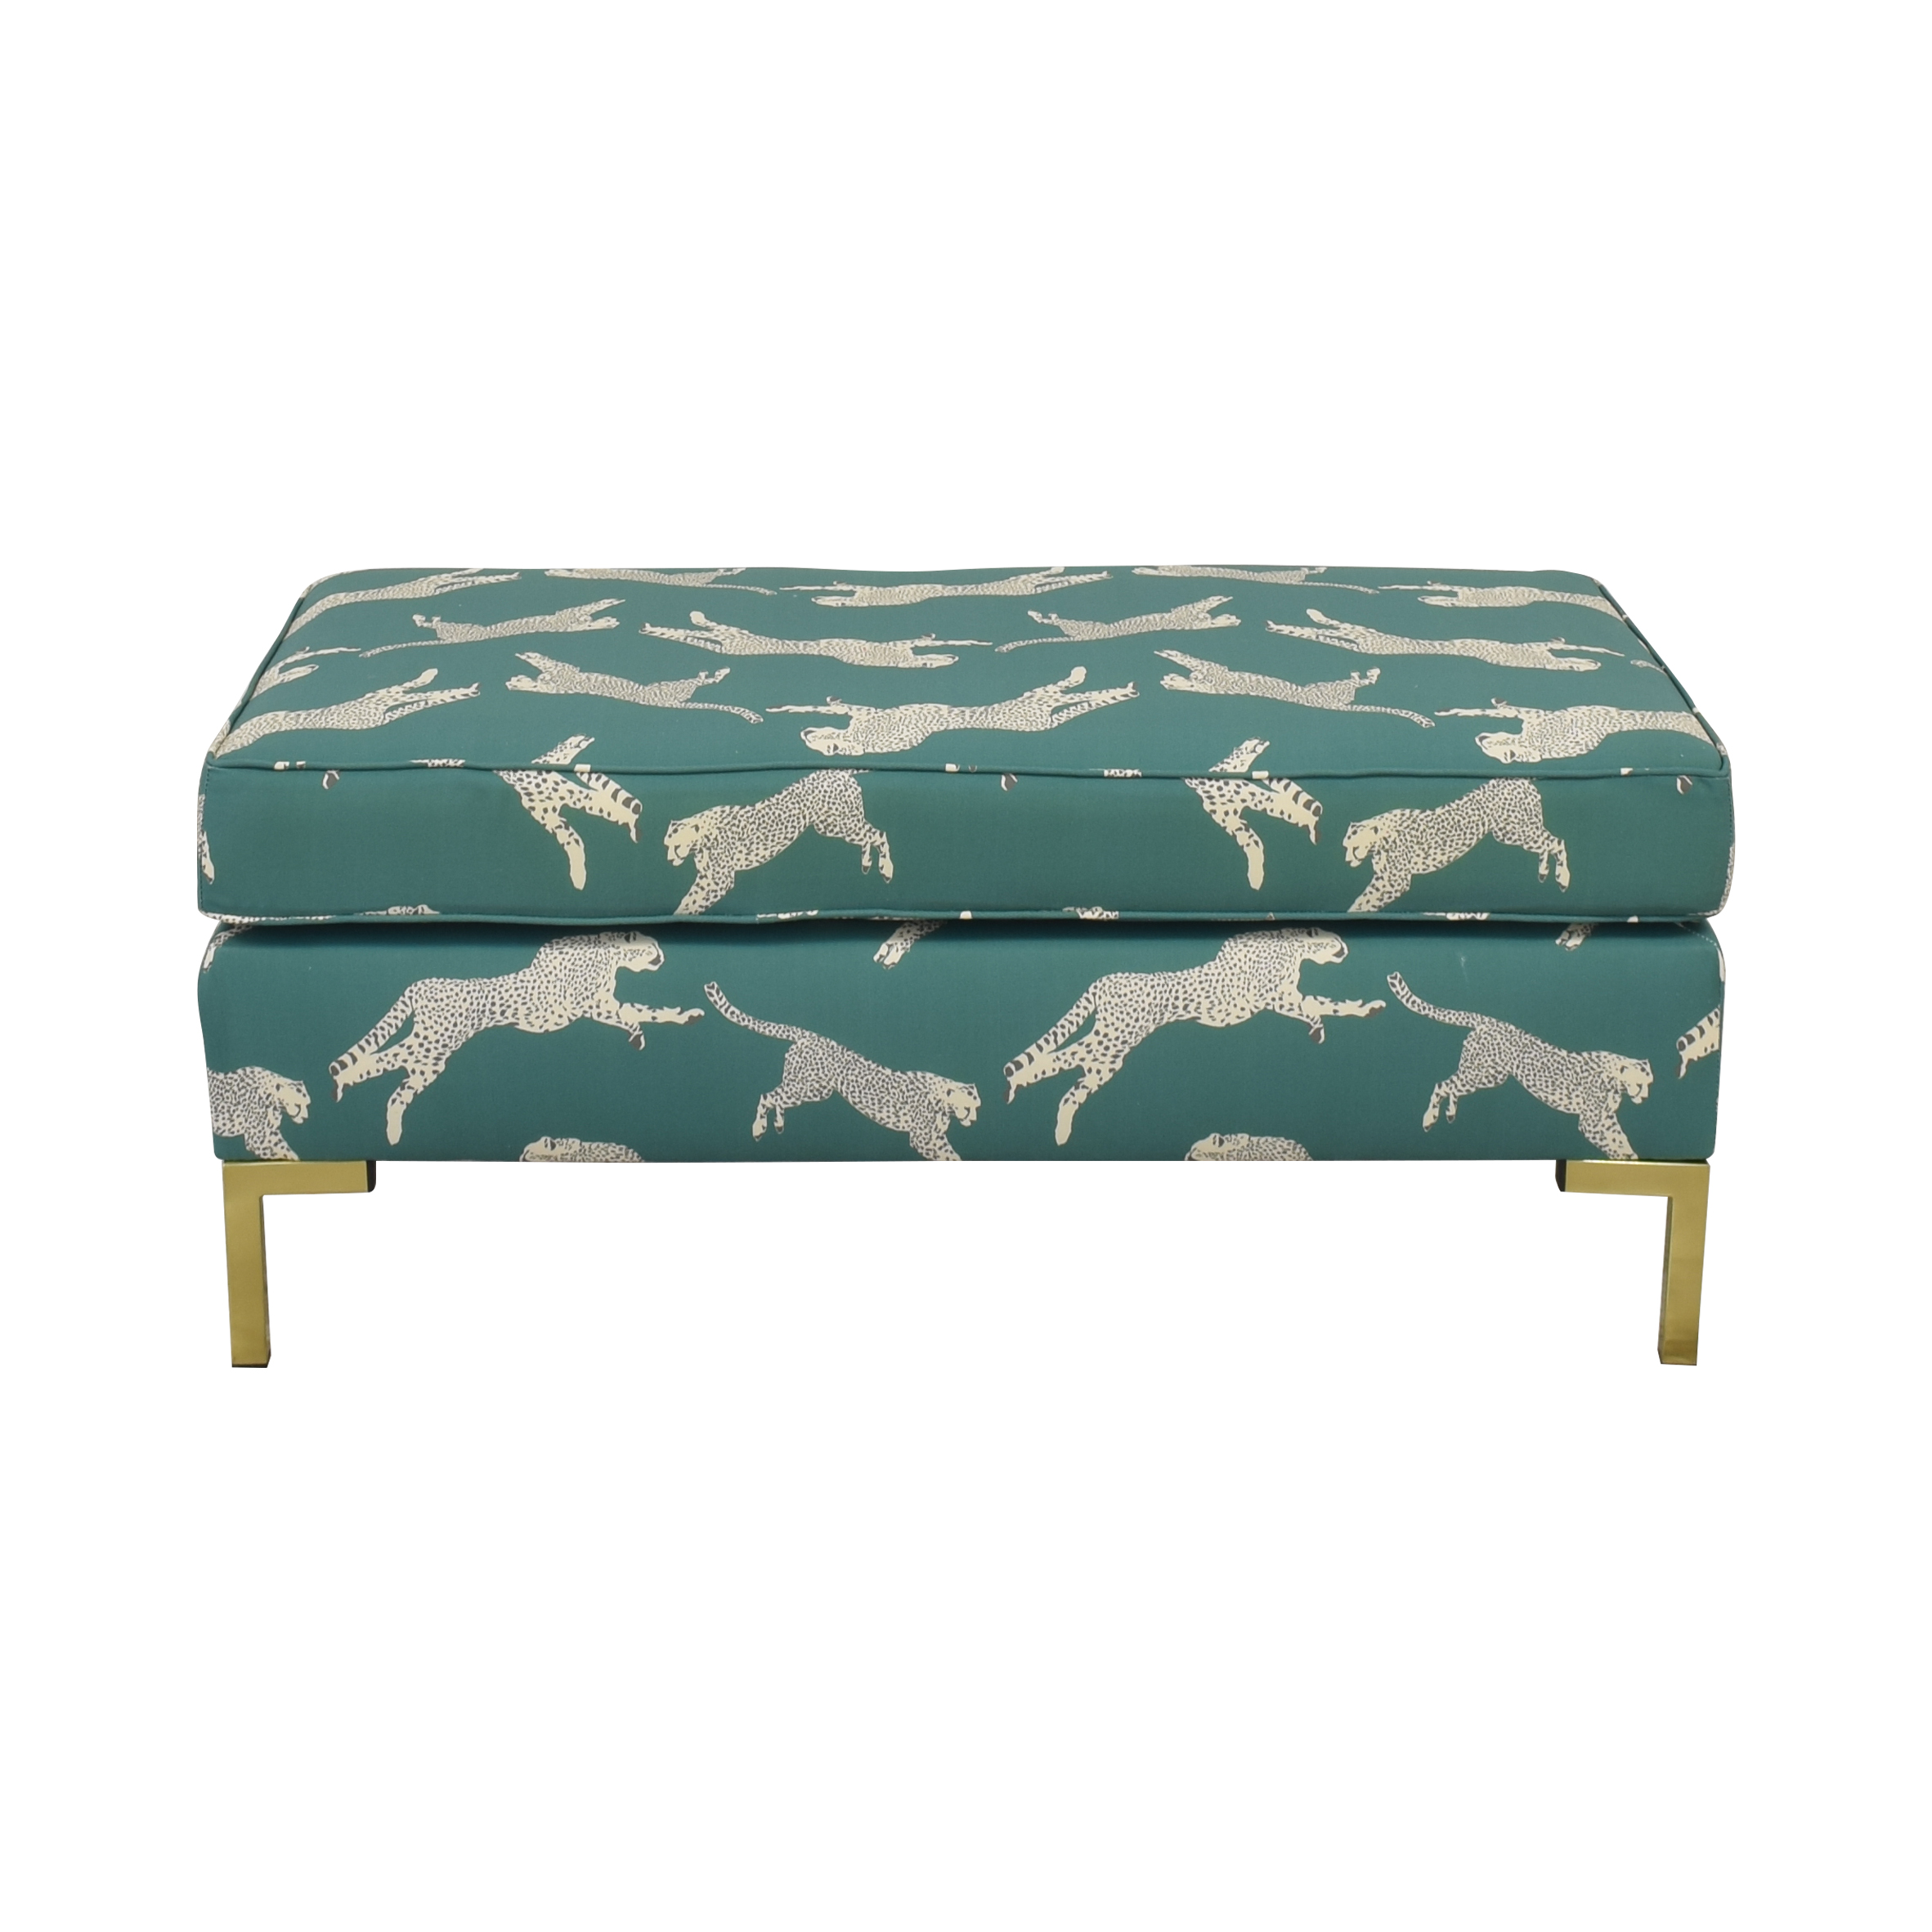 shop The Inside Scalamandre Modern Bench The Inside Ottomans